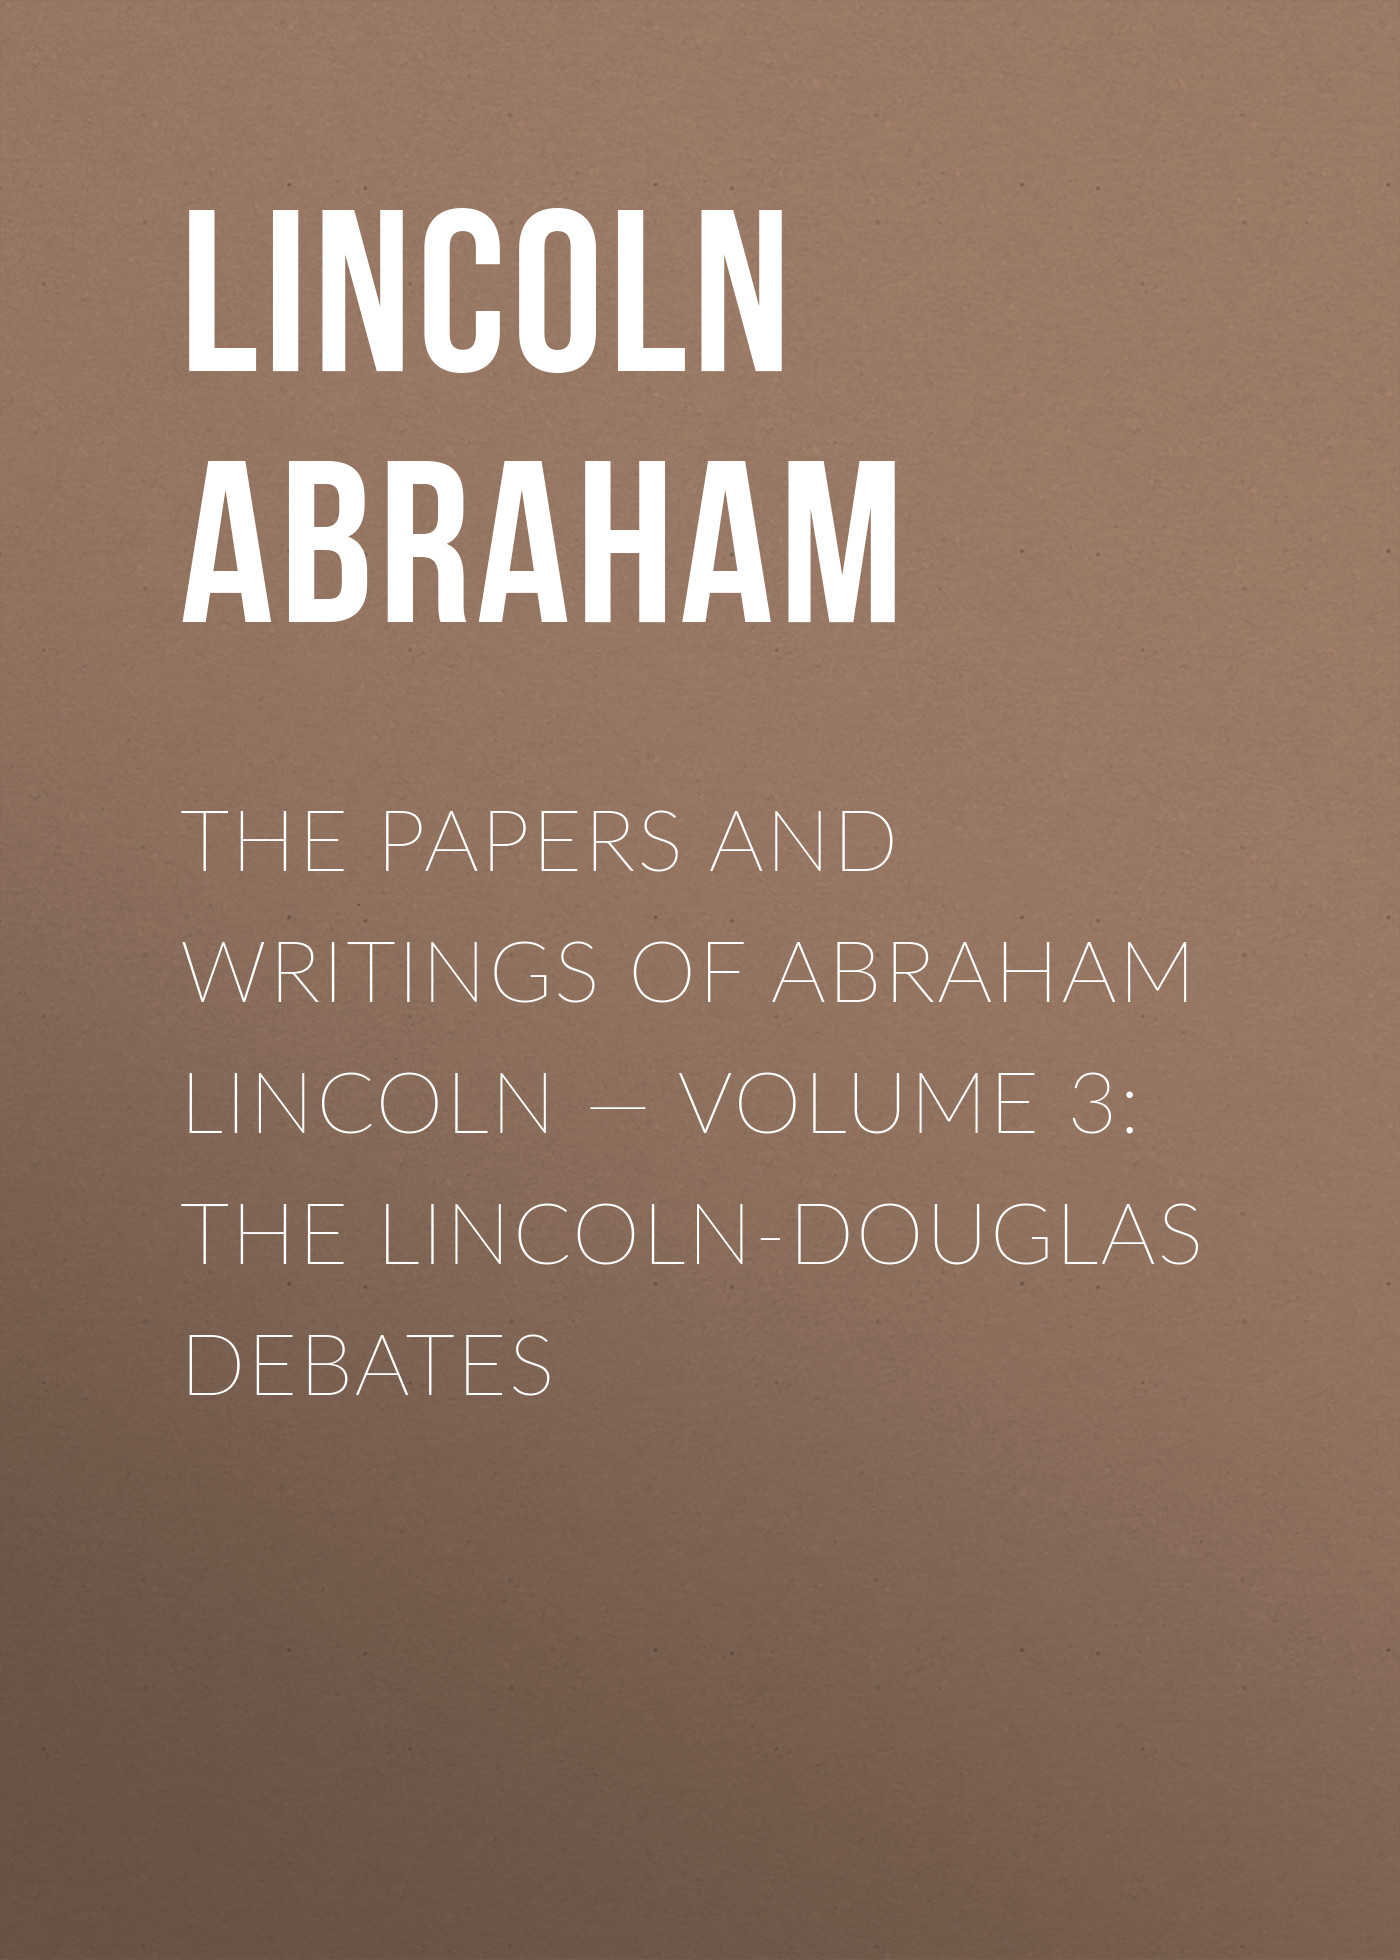 Lincoln Abraham The Papers And Writings Of Abraham Lincoln — Volume 3: The Lincoln-Douglas Debates